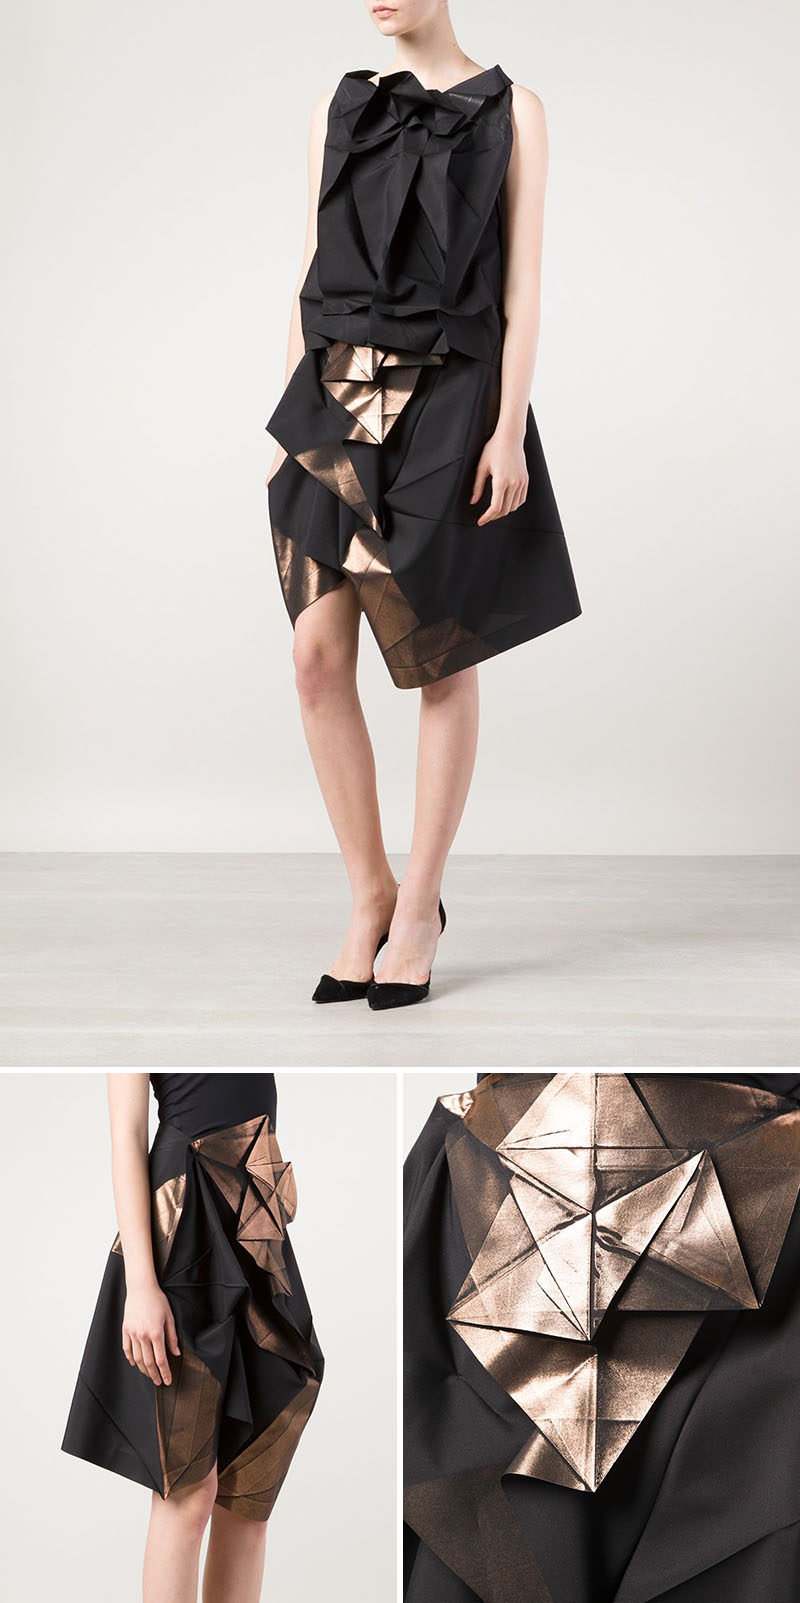 The fabric of this skirt has been folded and pressed to create distinct lines that are accentuated by the metallic finish on parts of the piece.